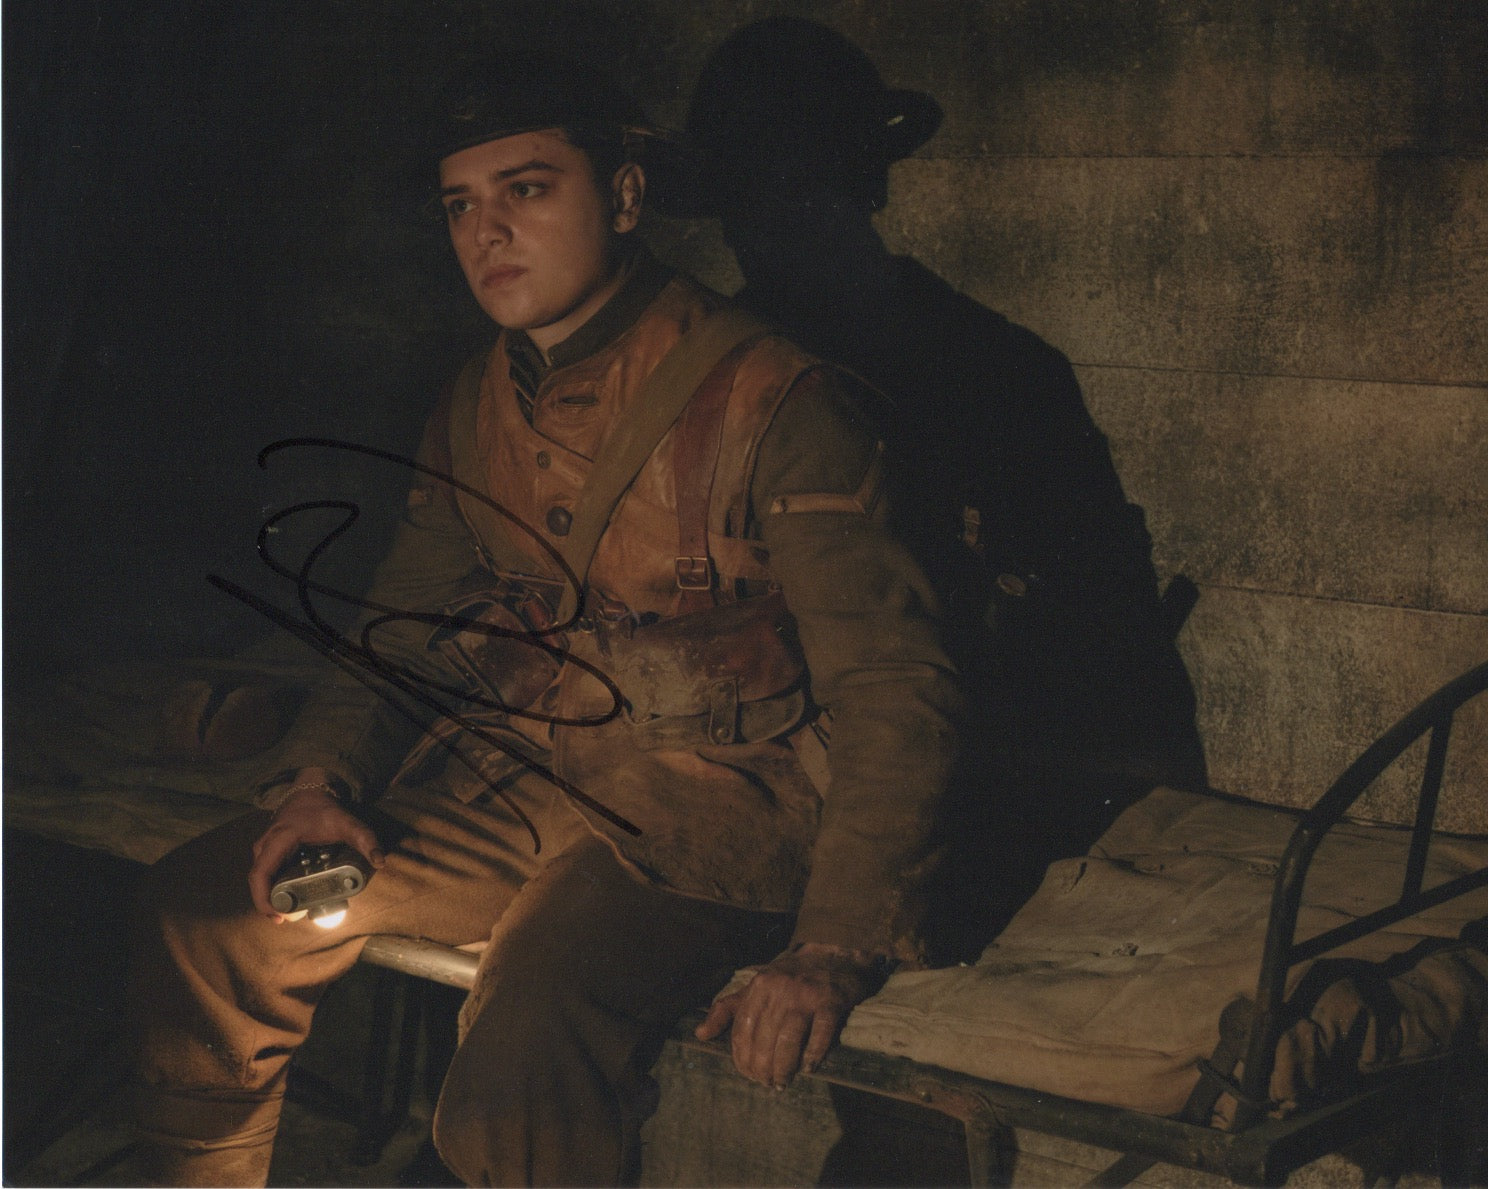 Dean Charles Chapman 1917 Autograph Signed 8x10 photo #2 - Outlaw Hobbies Authentic Autographs